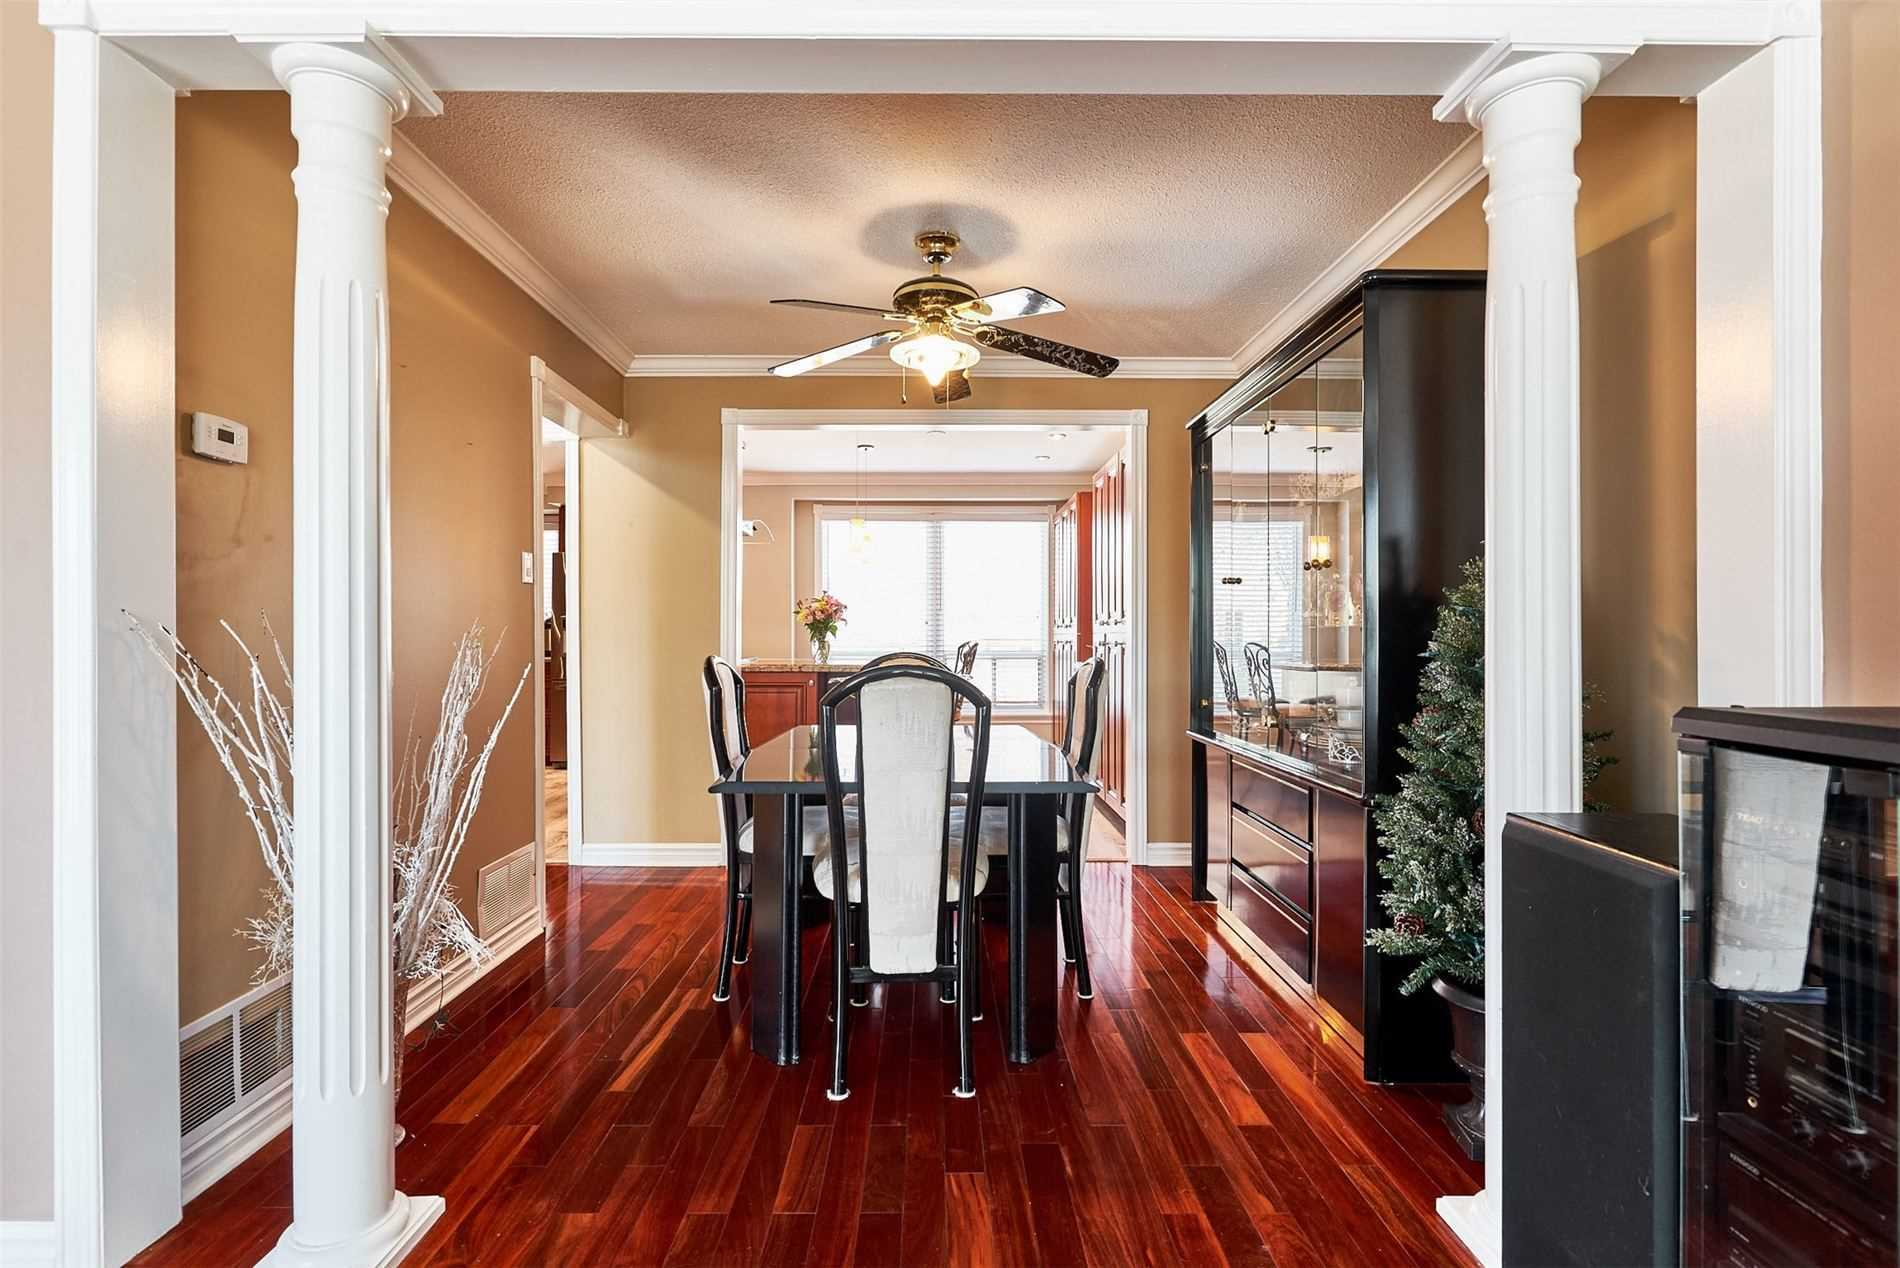 Image 31 of 33 showing inside of 3 Bedroom Condo Townhouse 2-Storey for Sale at 33 Clover Ridge Dr W Unit# 9, Ajax L1S3M5